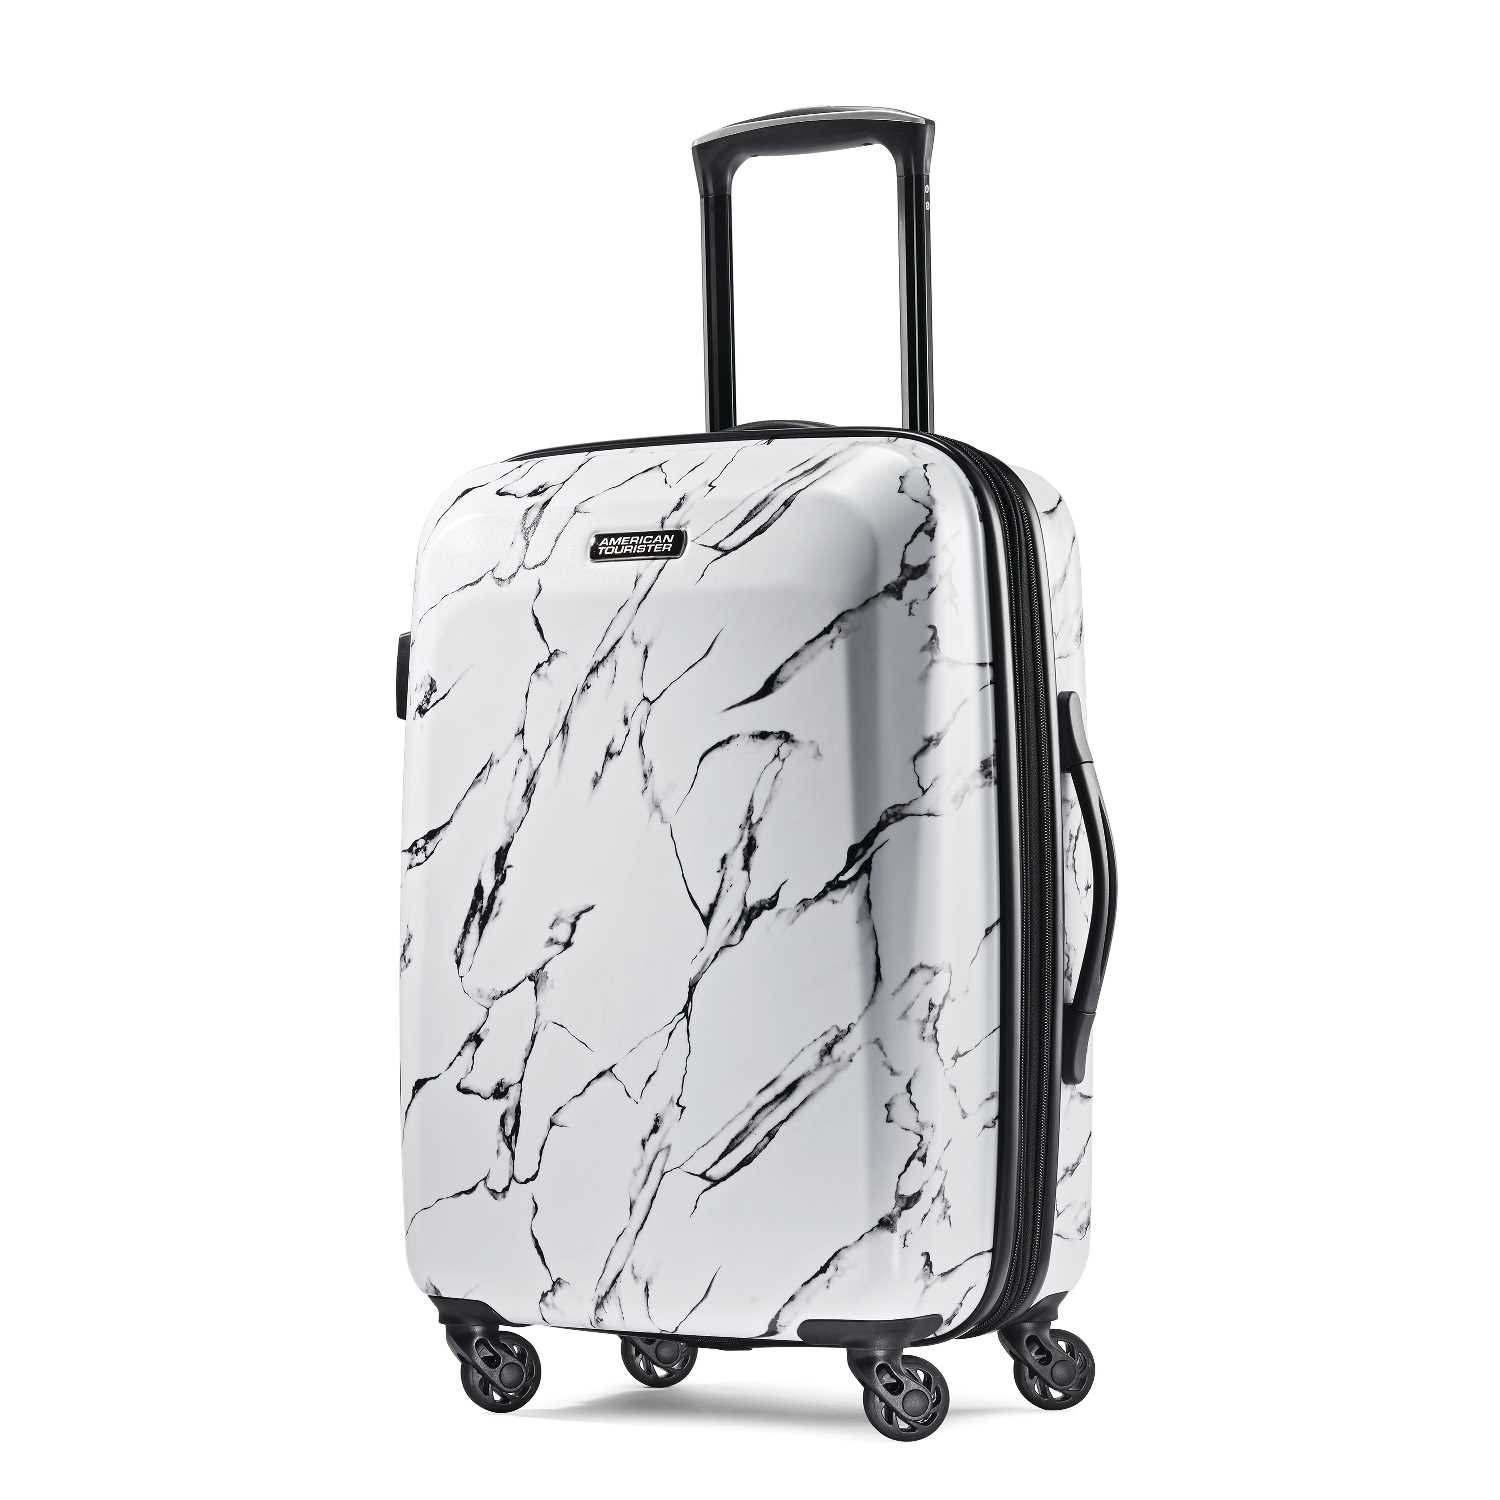 American Tourister 92504 T555 Carry On Marble